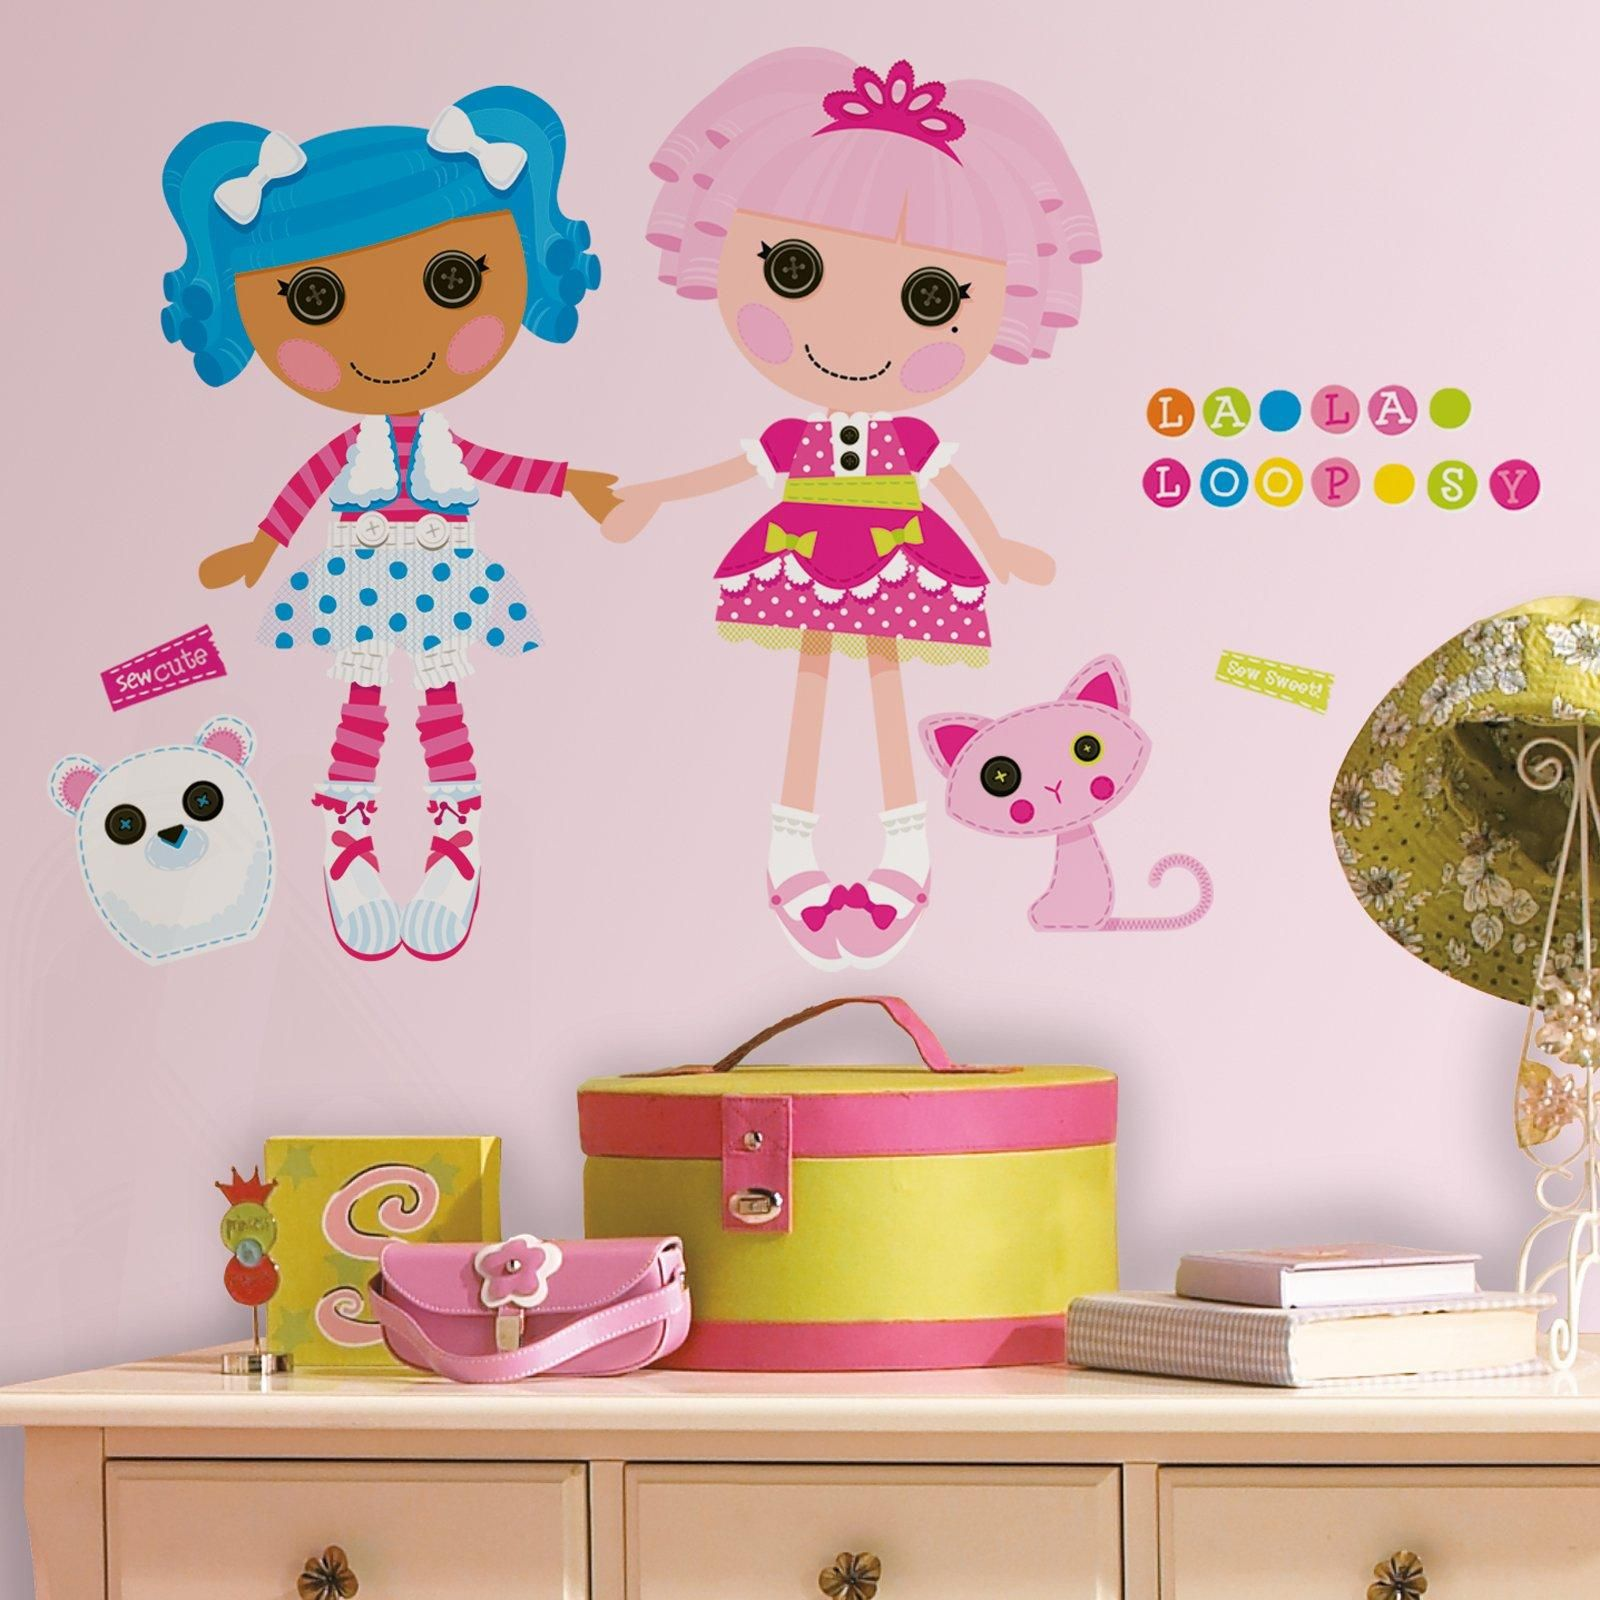 Lalaloopsy Peel and Stick Giant Wall Decals from BirthdayExpress.com  sc 1 st  Pinterest & Lalaloopsy Giant Wall Decals | Lalaloopsy Wall decals and Party stores